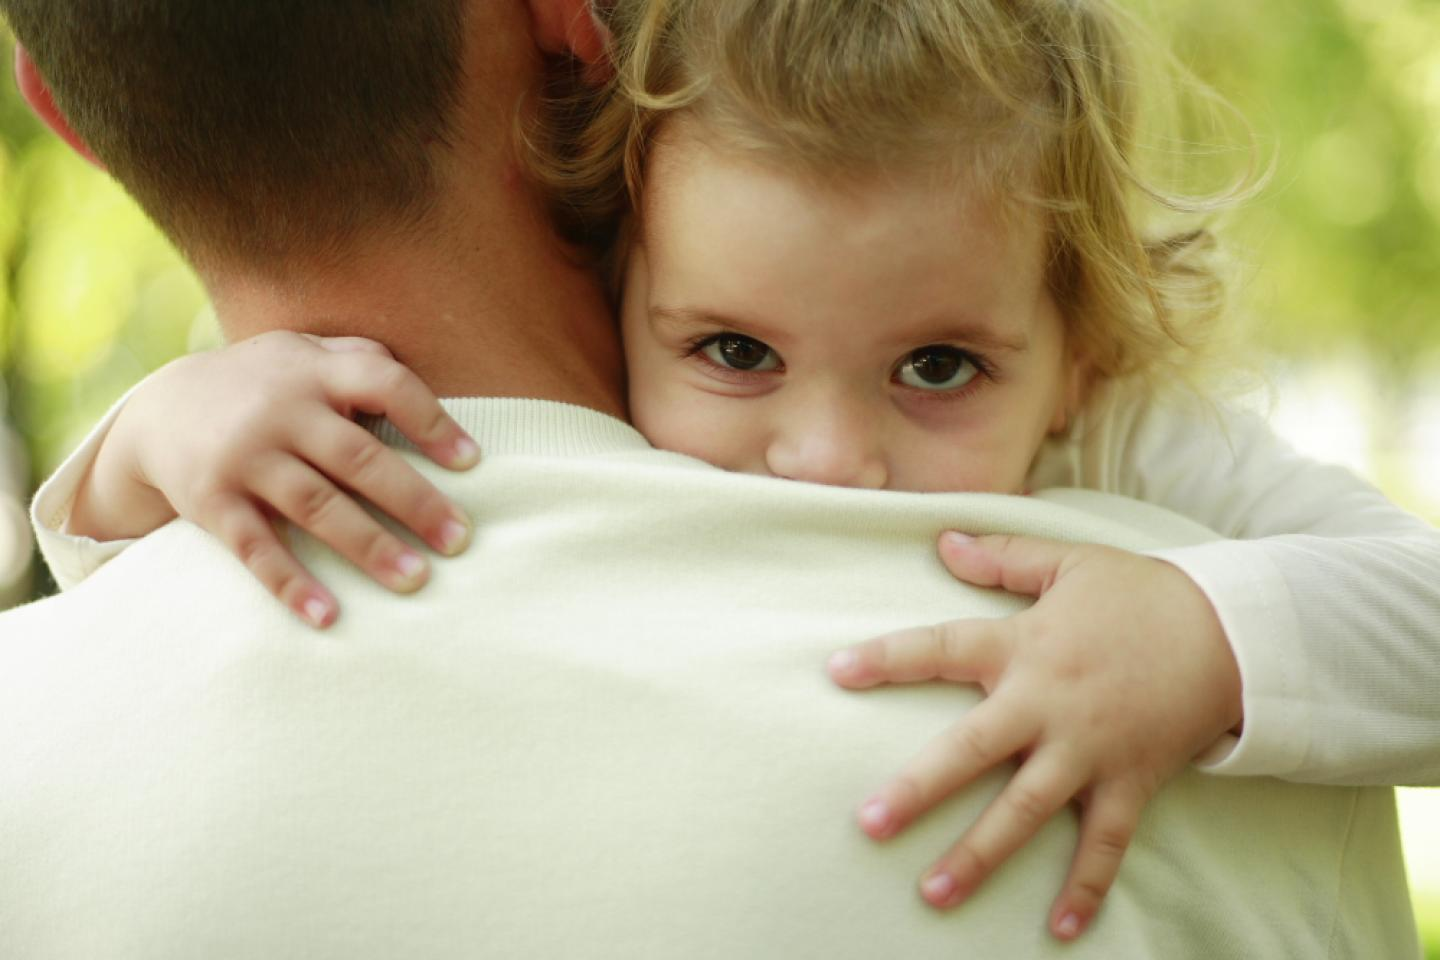 Father carries daughter in his arms while she hugs him